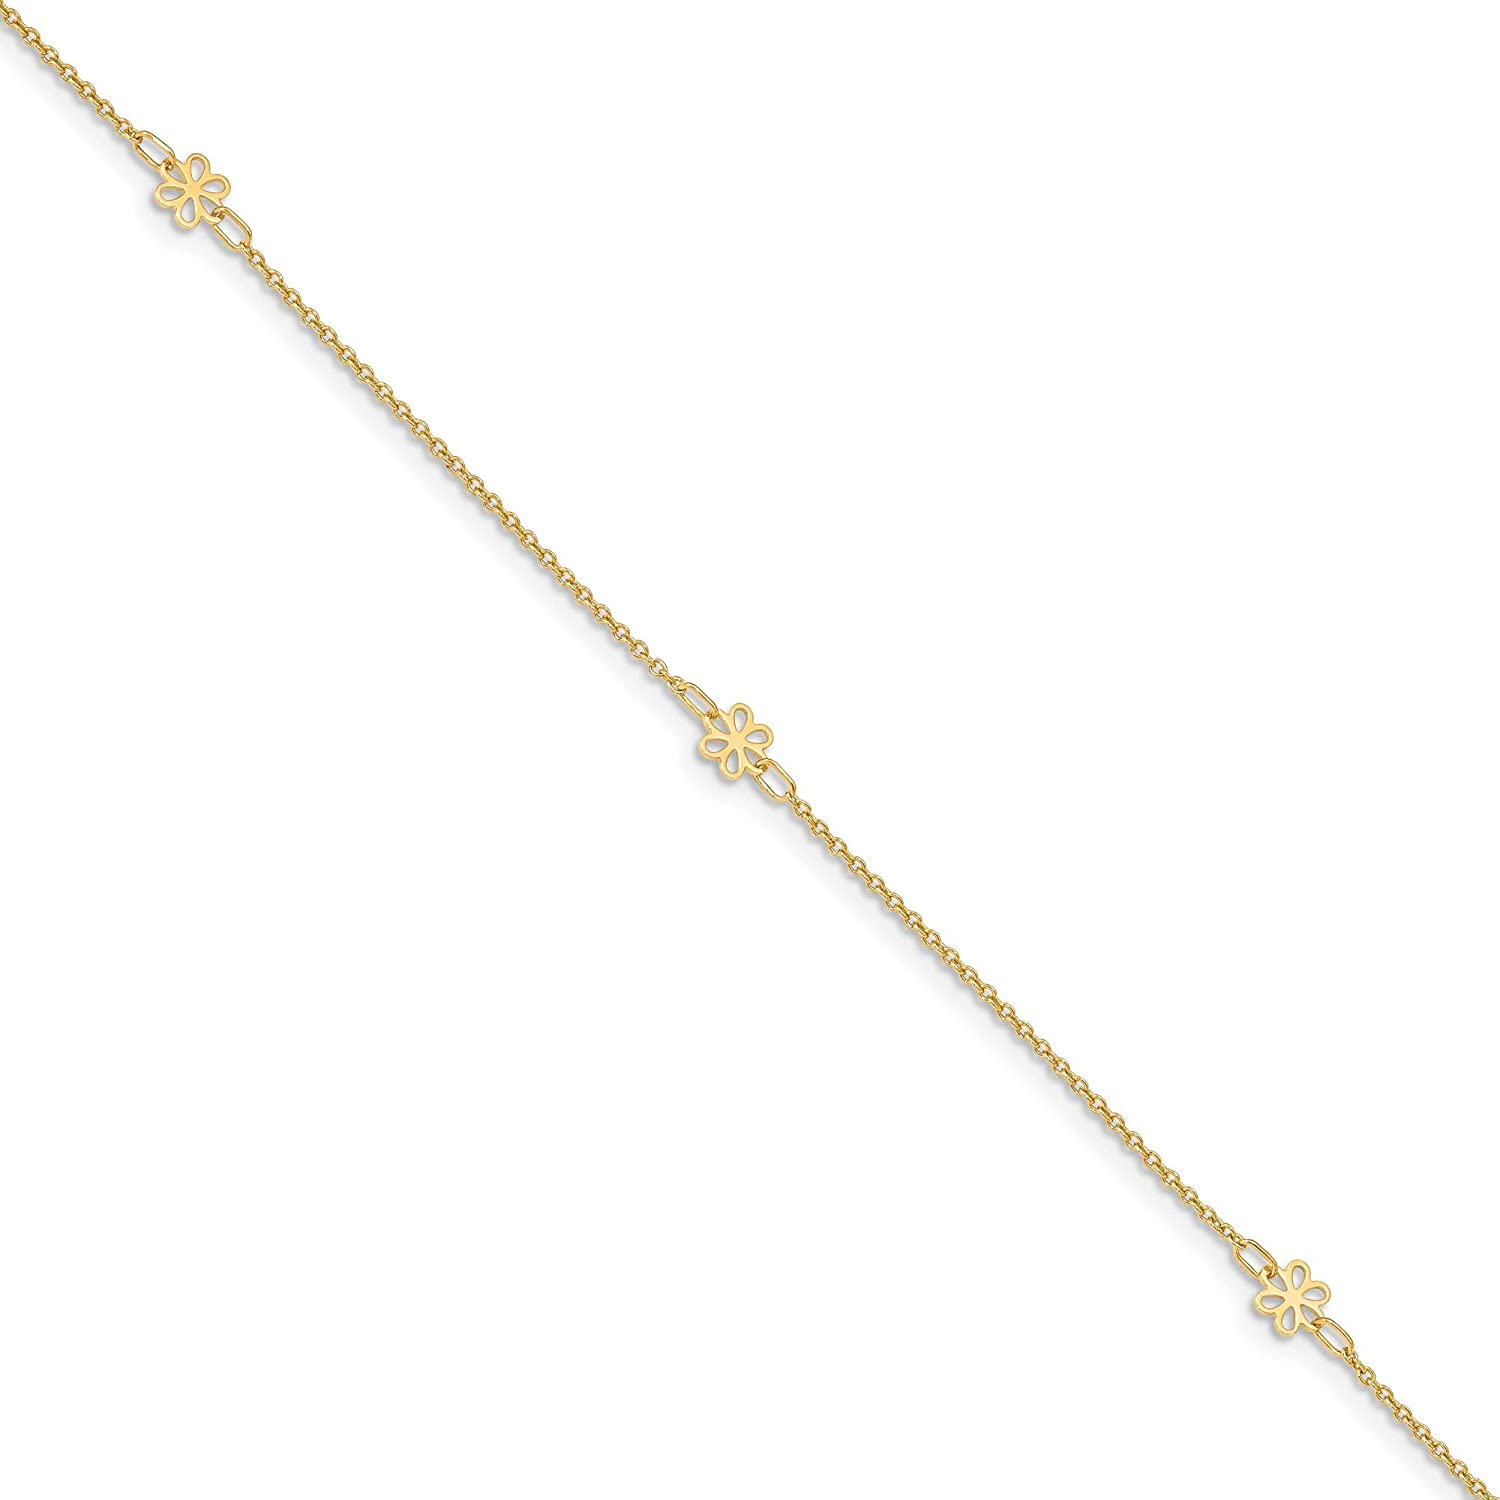 14K Polished Flowers w/1 in ext Anklet, 14k Yellow Gold, Length: 11 inch